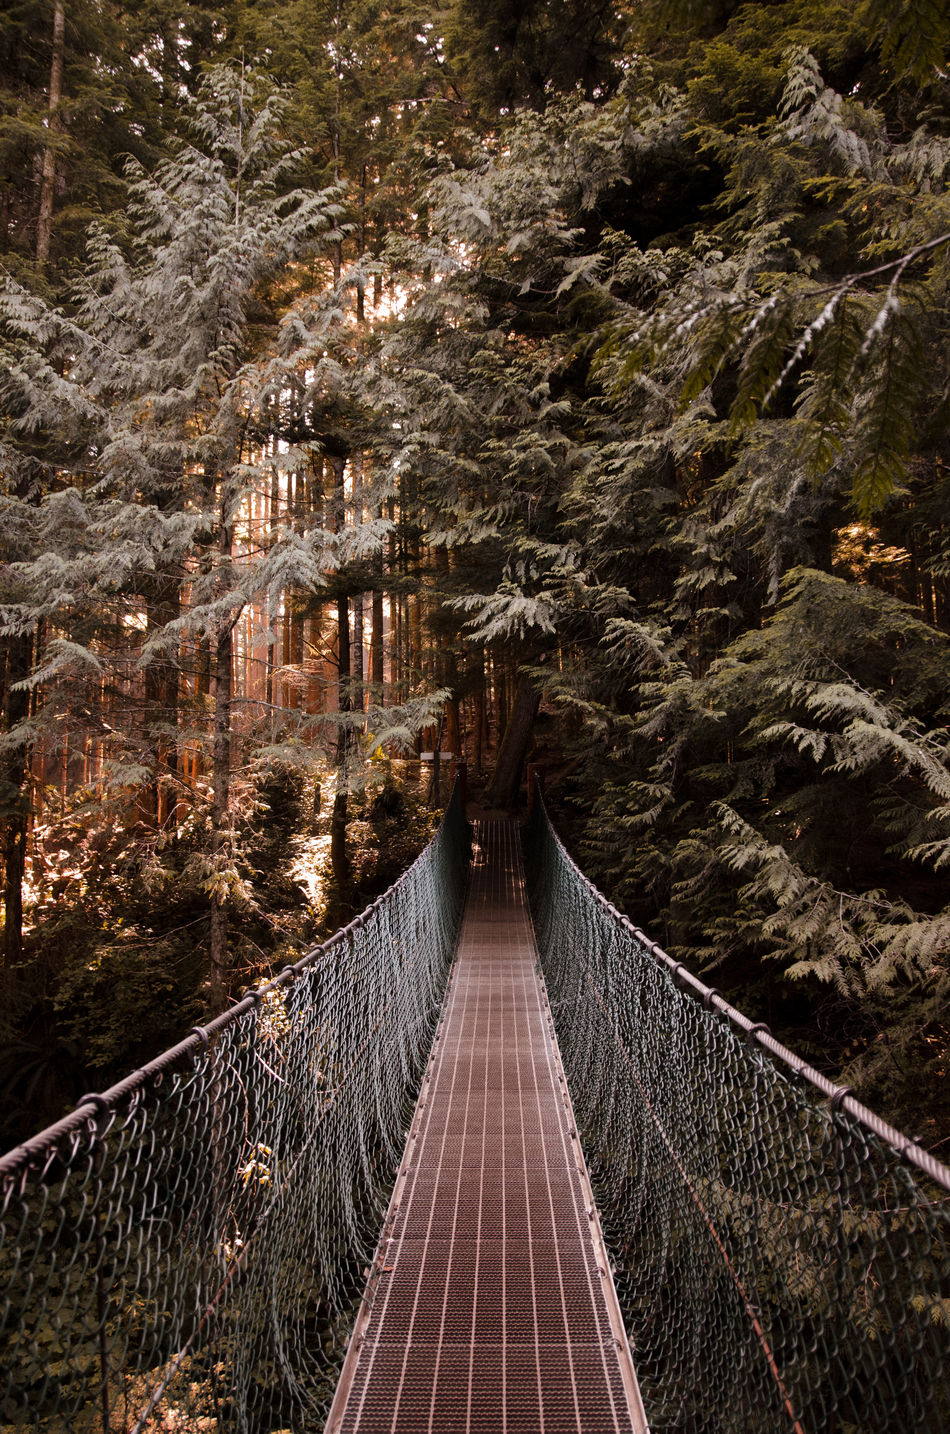 Architecture Bridge - Man Made Structure British Columbia Canada Connection Day Nature No People Outdoors The Way Forward Tree Vancouver Island